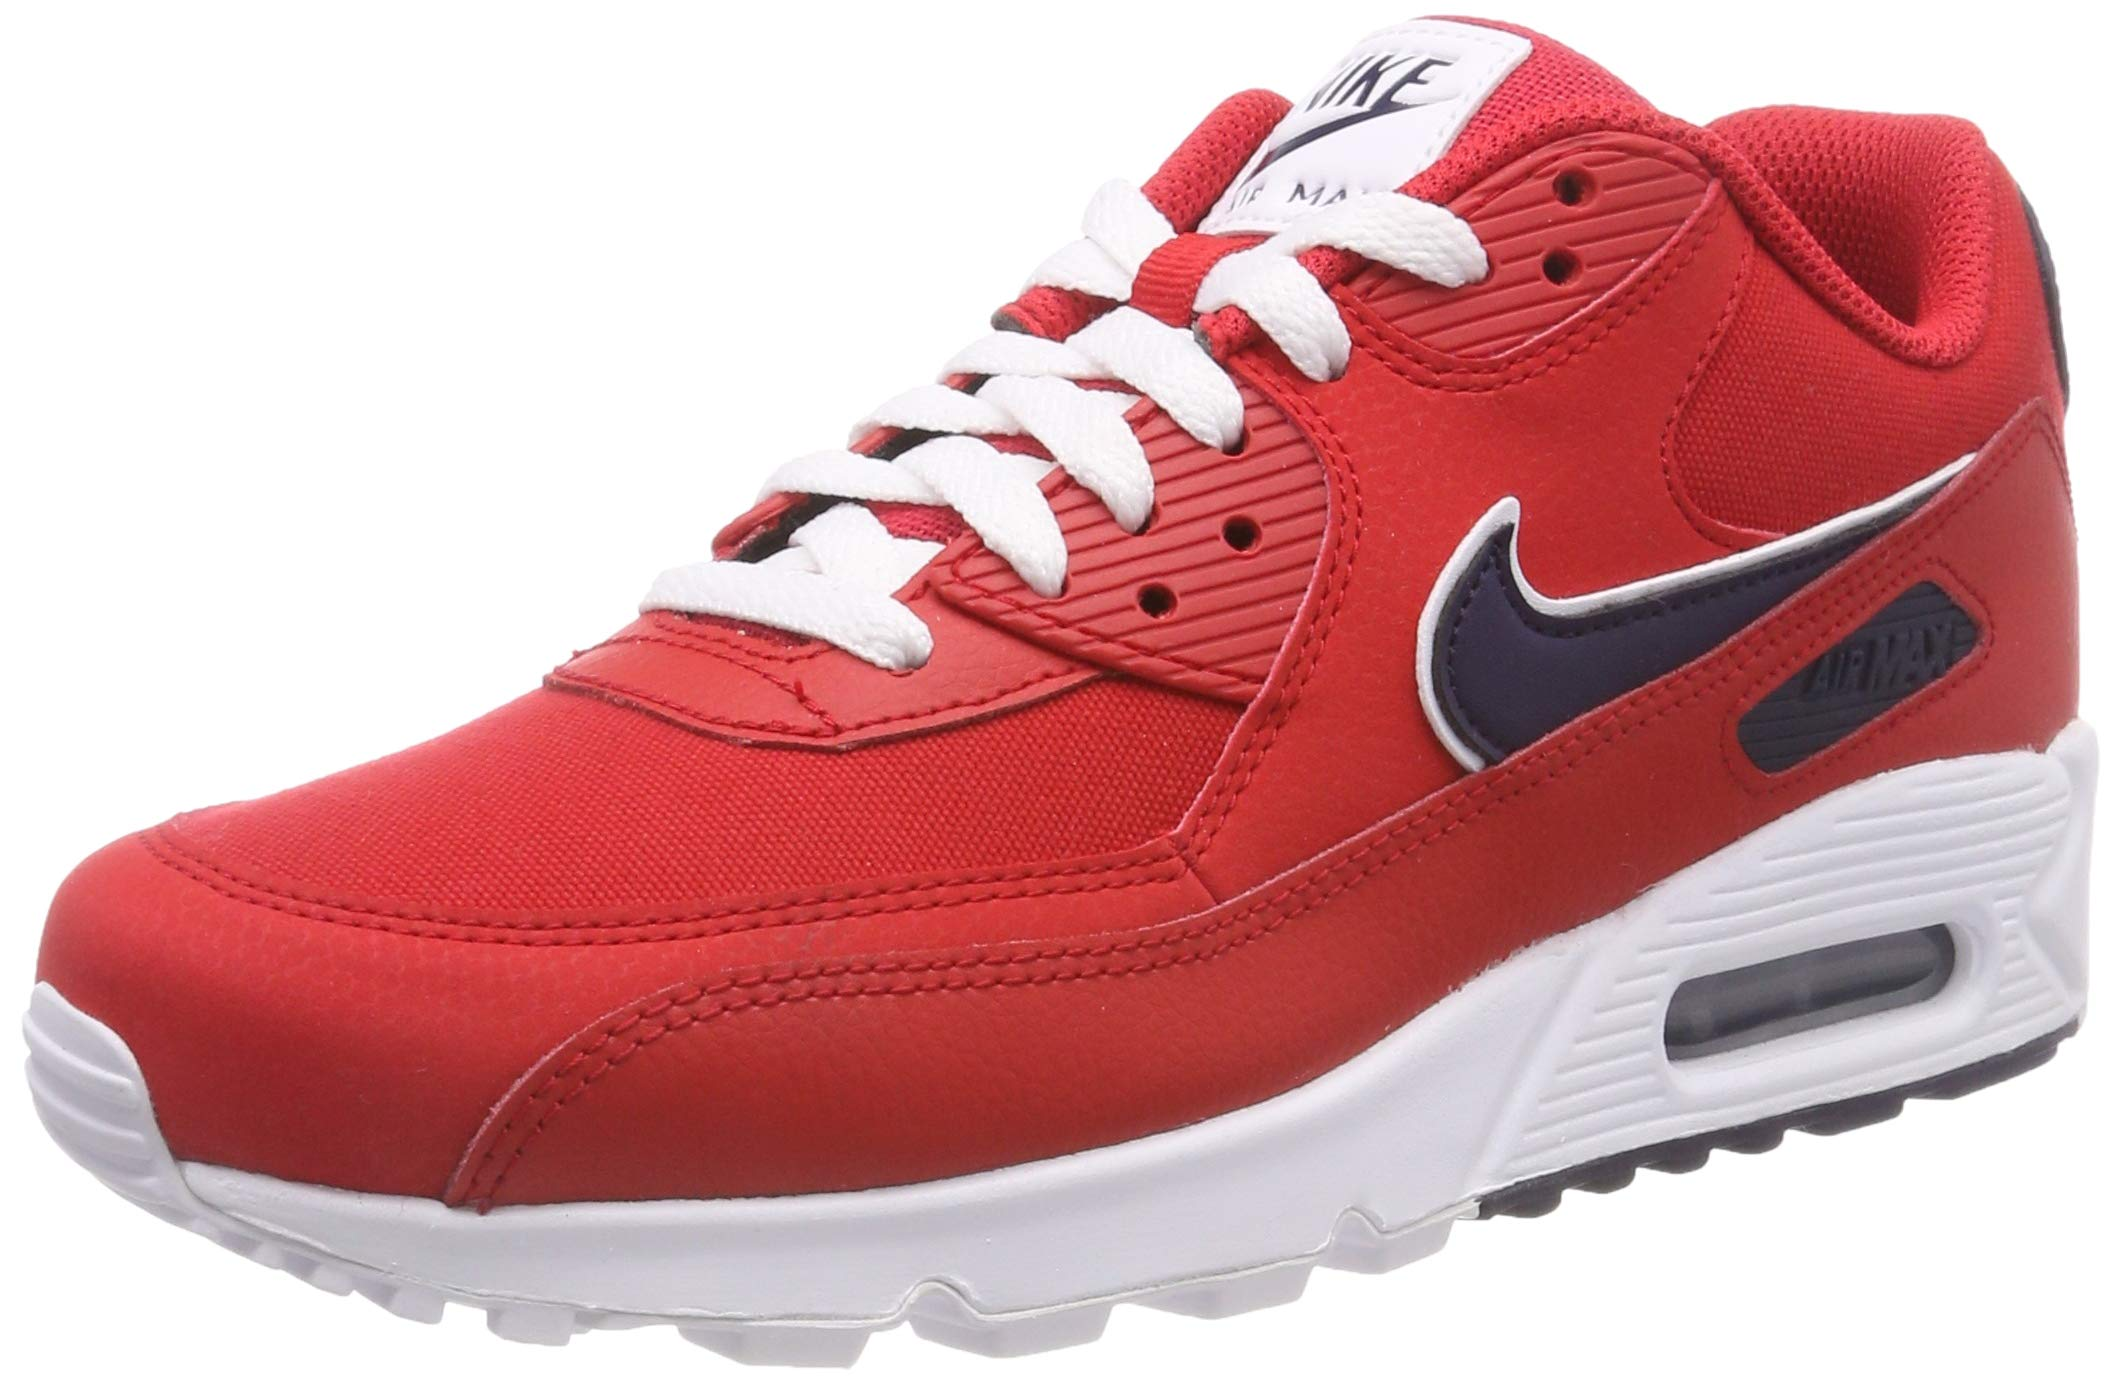 best sneakers 56e96 d1c2b Galleon - Nike Mens Air Max 90 Essential Running Shoes University  Red Blackened Blue White AJ1285-601 Size 10